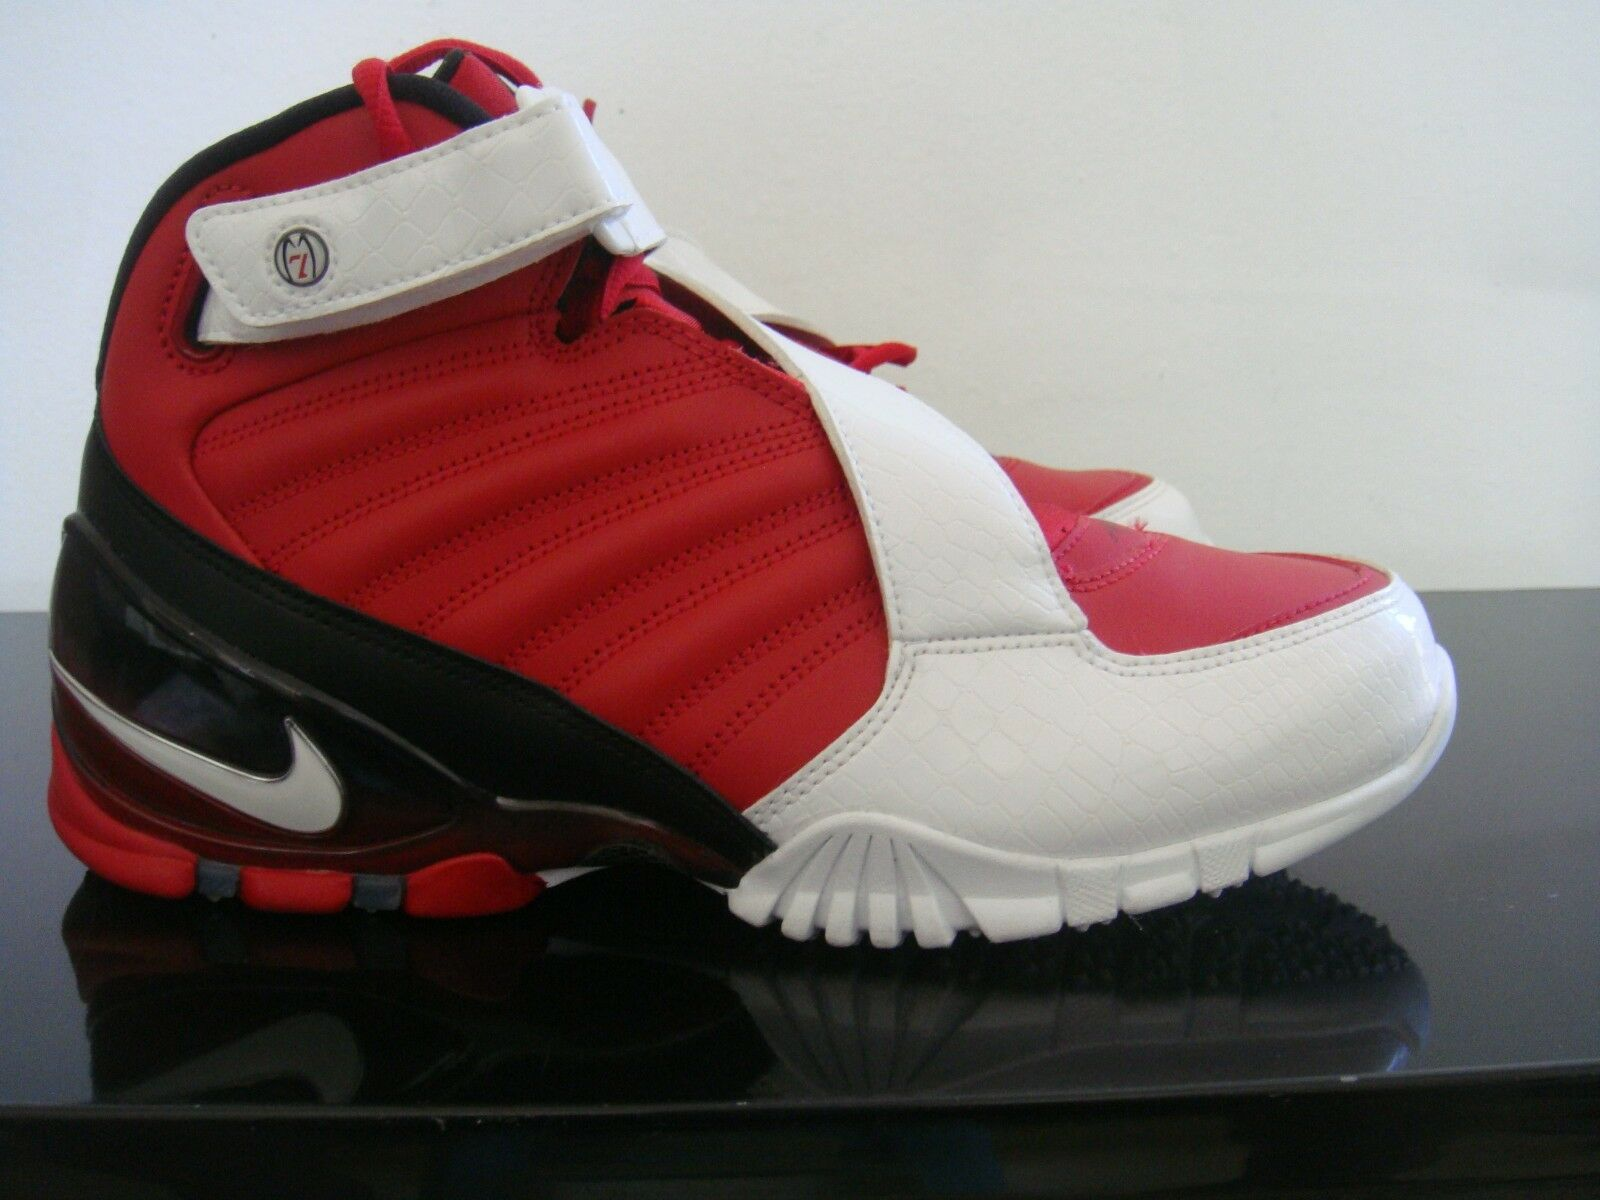 NIKE ZOOM VICK 3 III VARSITY RED/WHITE/BLACK SHOES 832698-600 SIZE 9 Brand discount